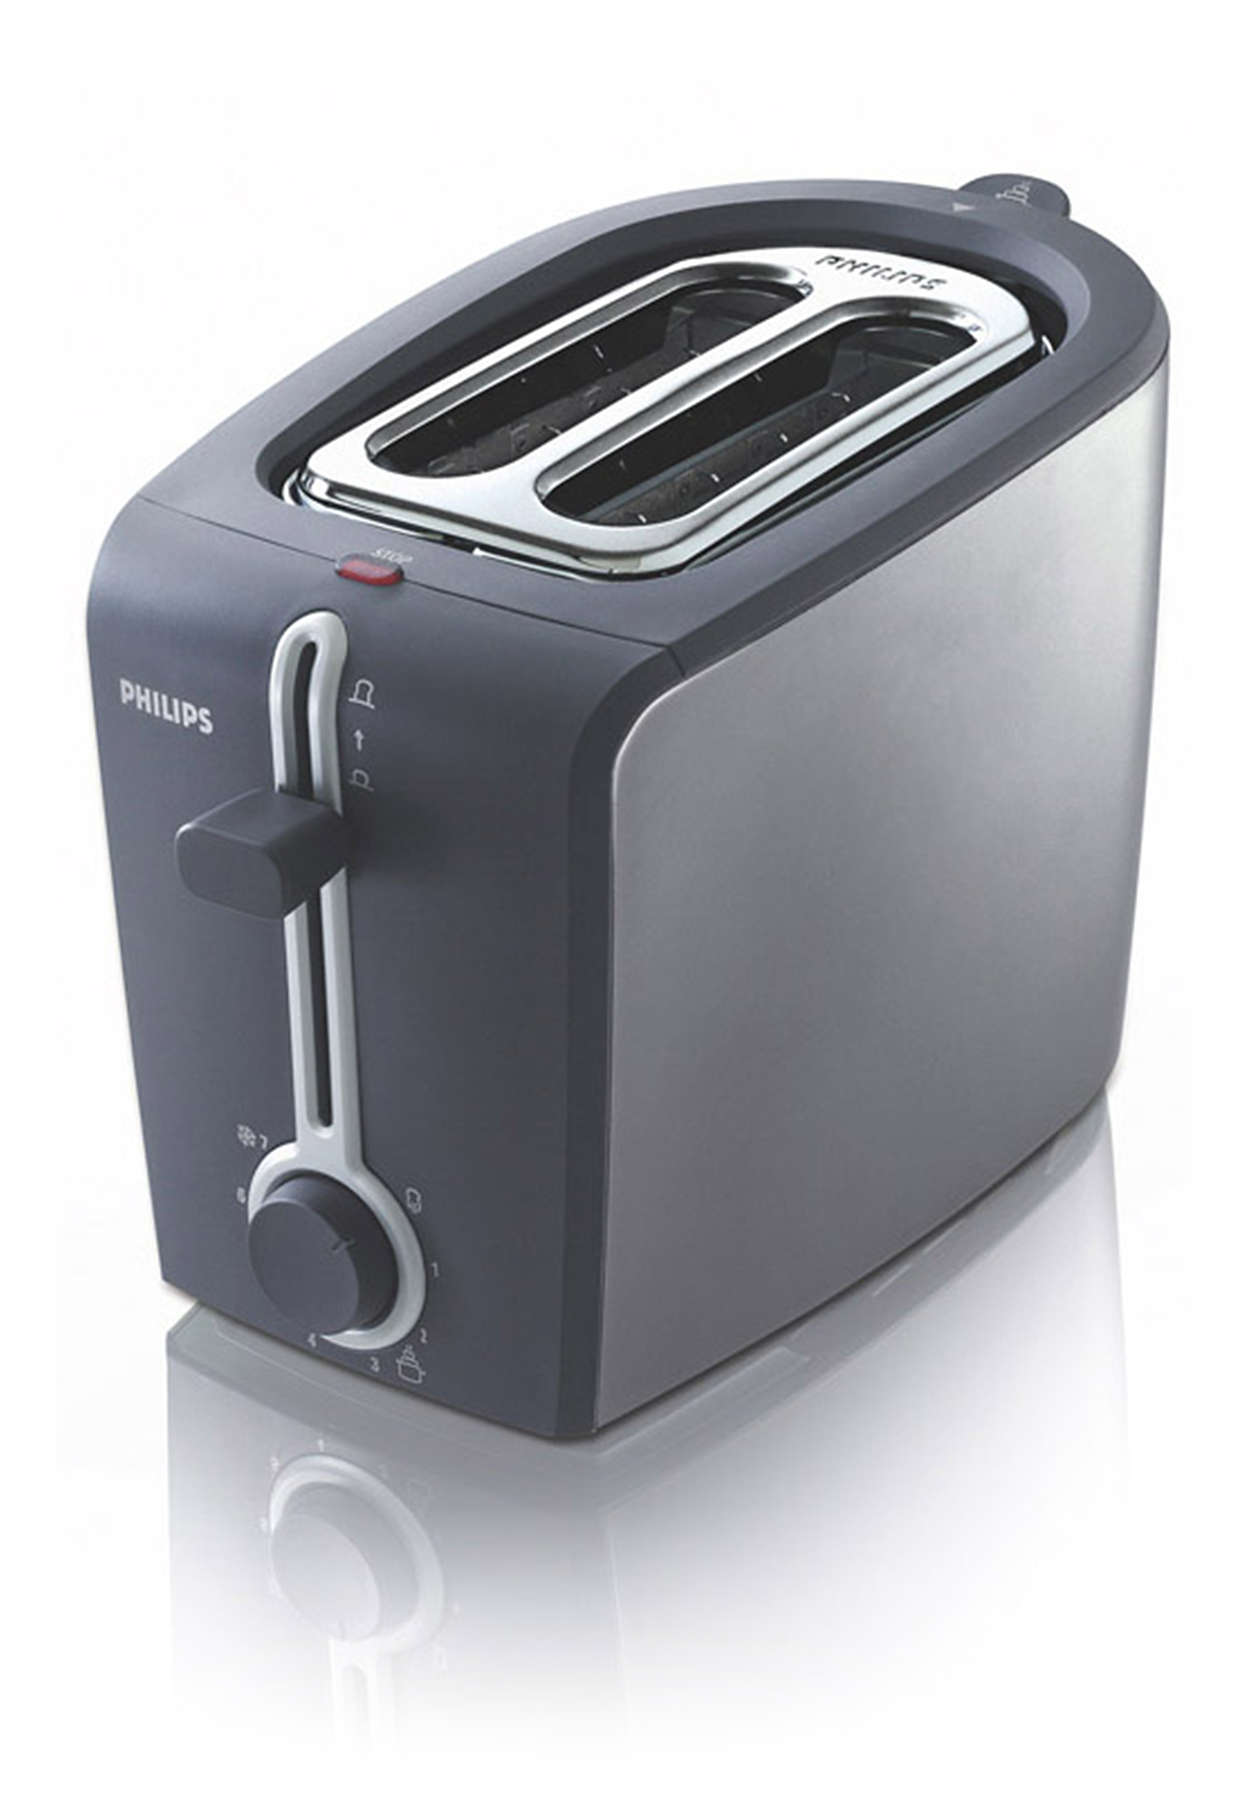 Great toast, easy cleaning